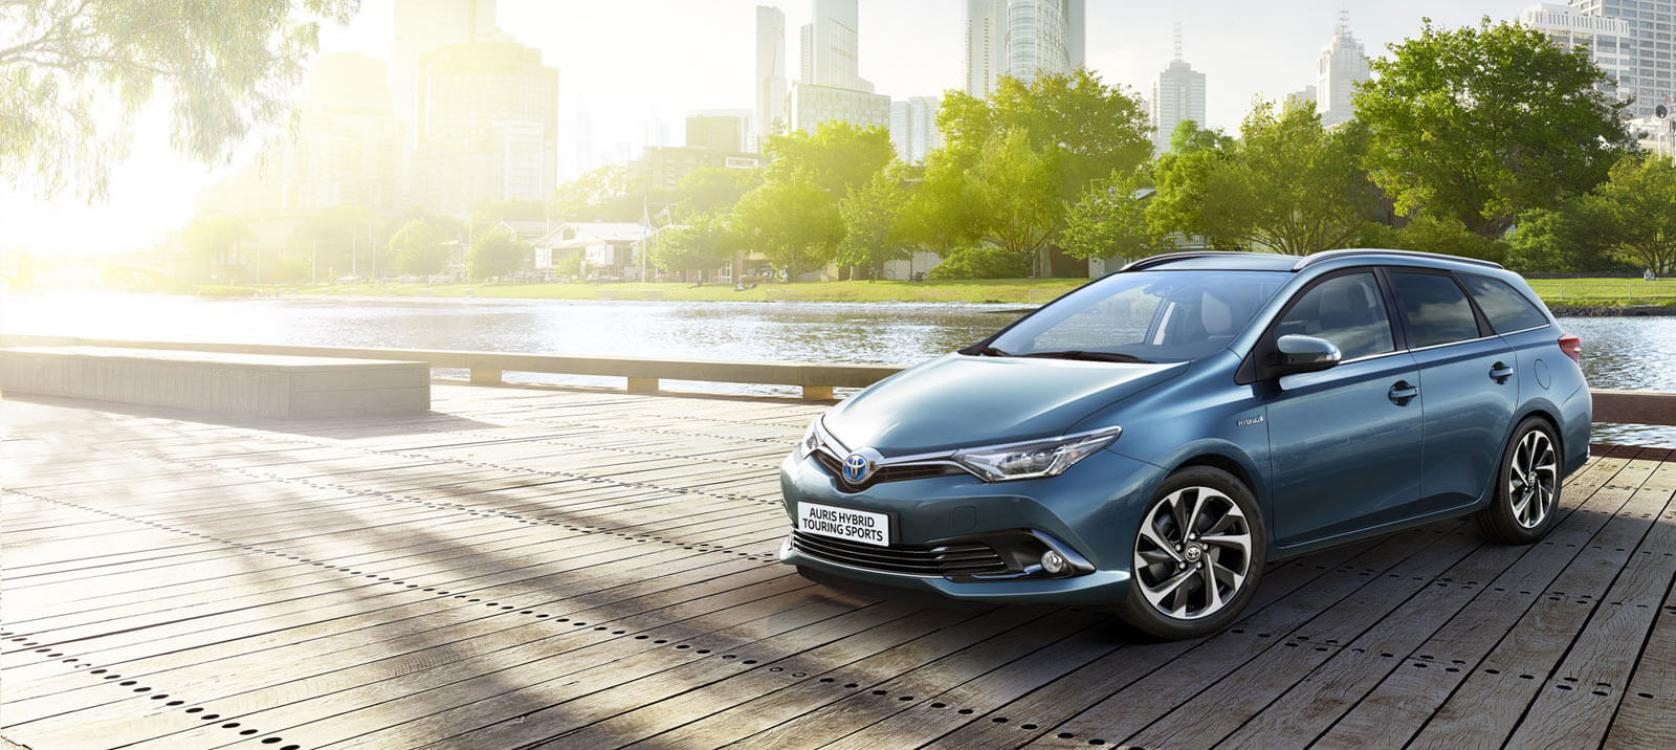 auris hybrid touring sports models features vantage toyota wakefield. Black Bedroom Furniture Sets. Home Design Ideas